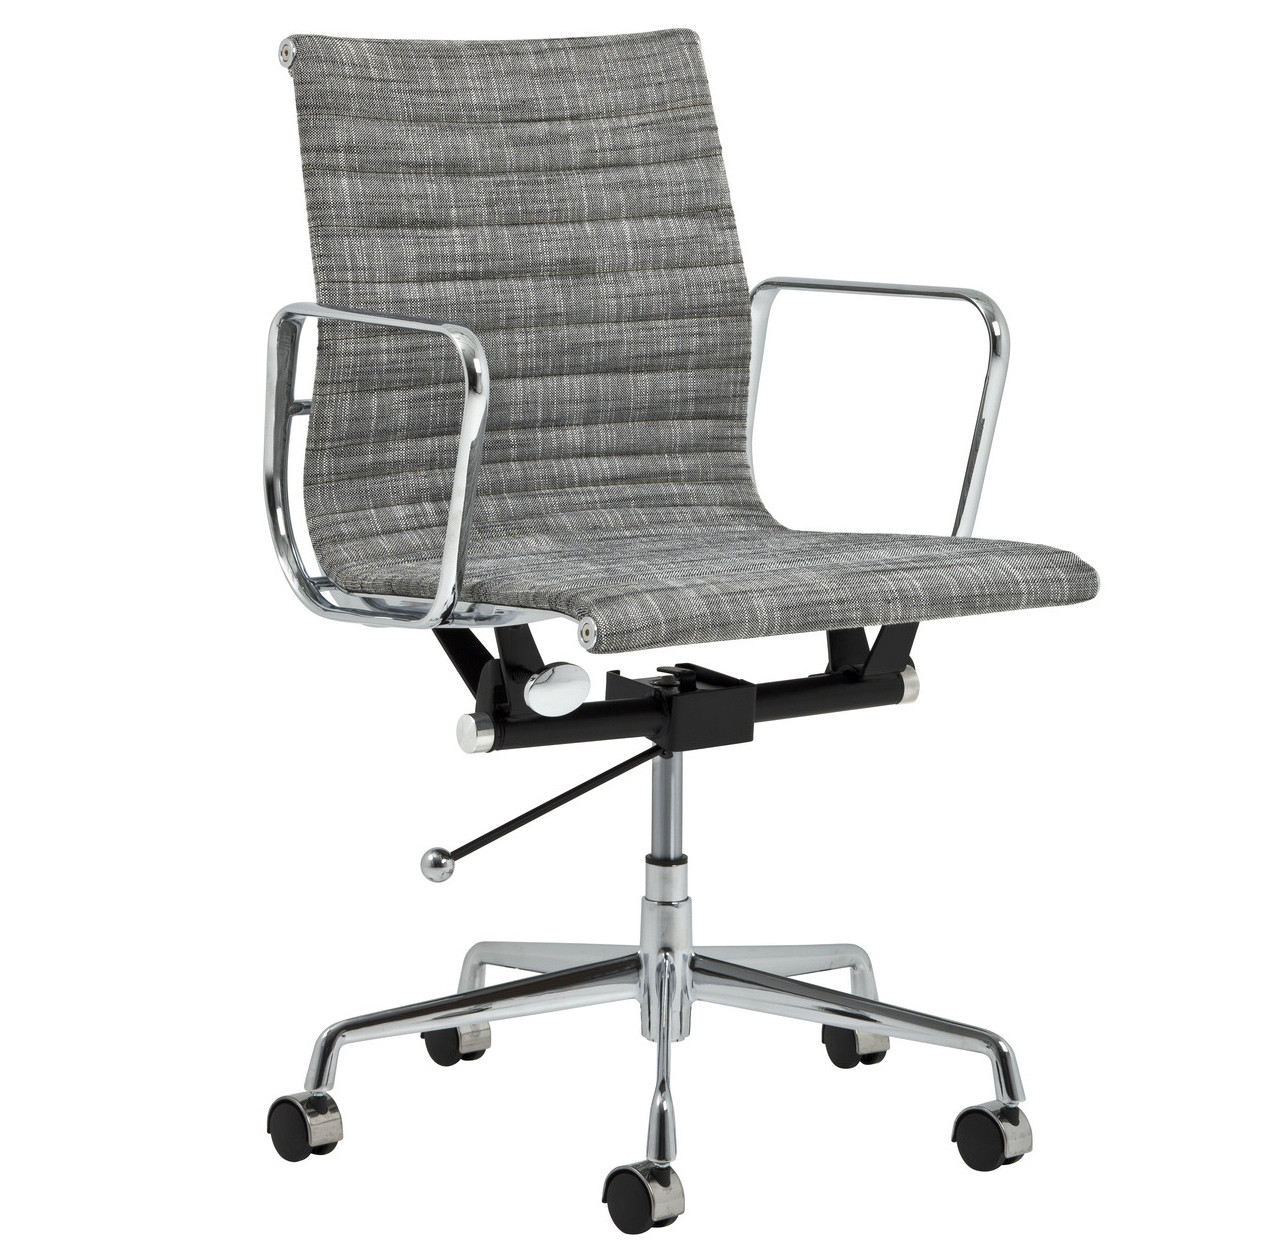 New eames replica fabric management office chair ebay for Eames lounge chair replica erfahrungen